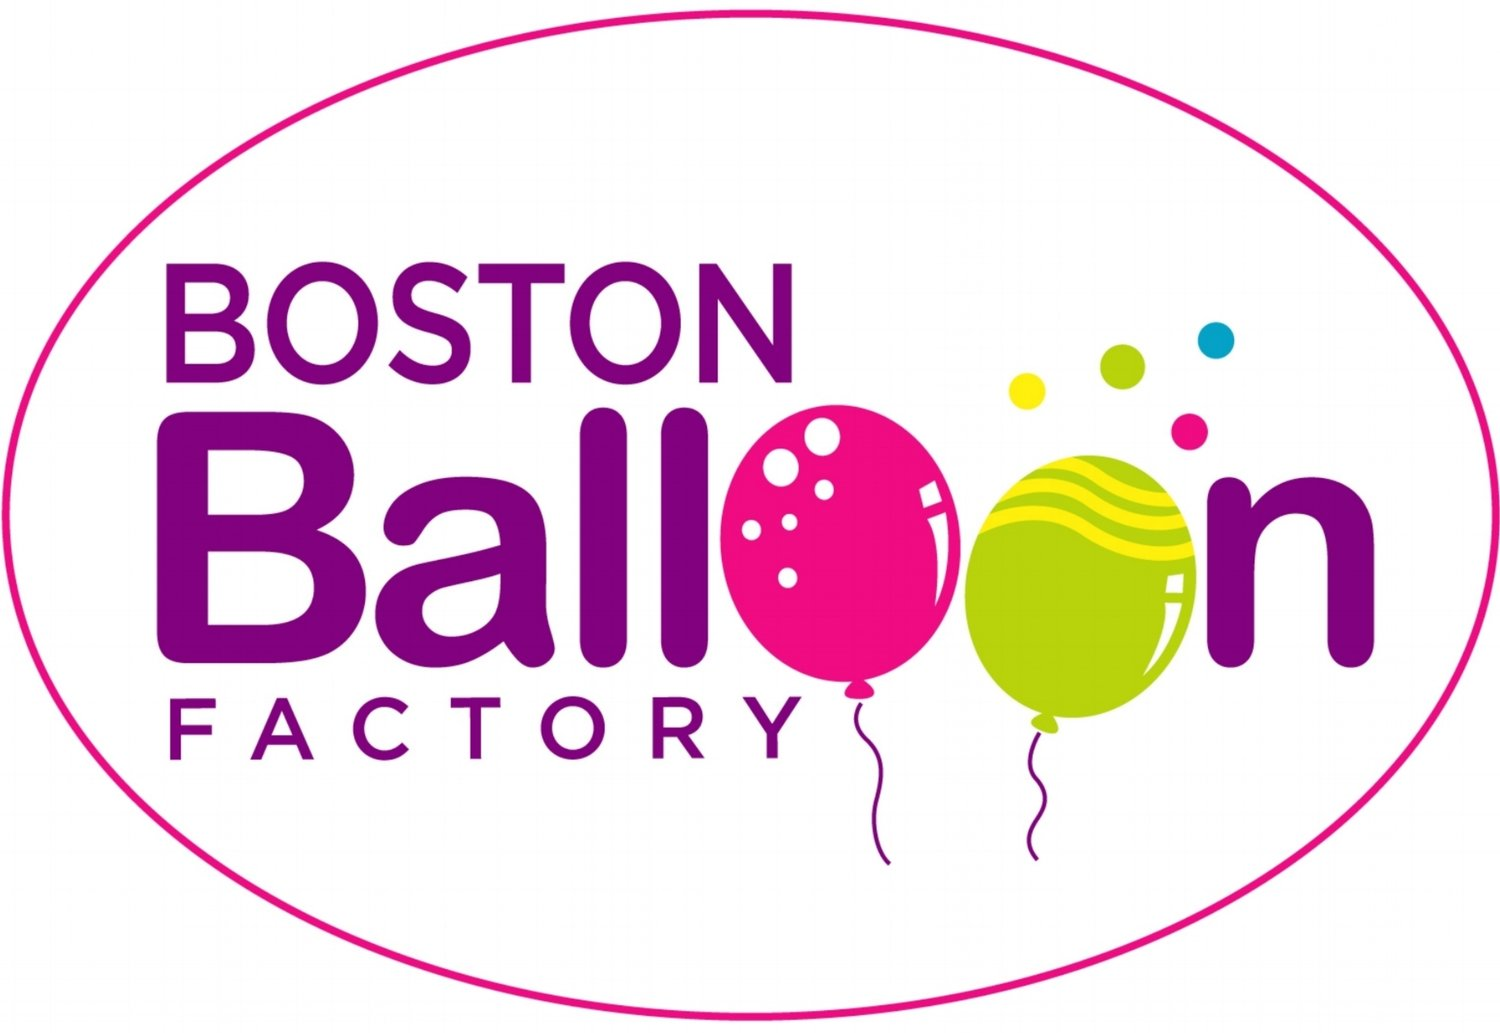 Boston Balloon Factory